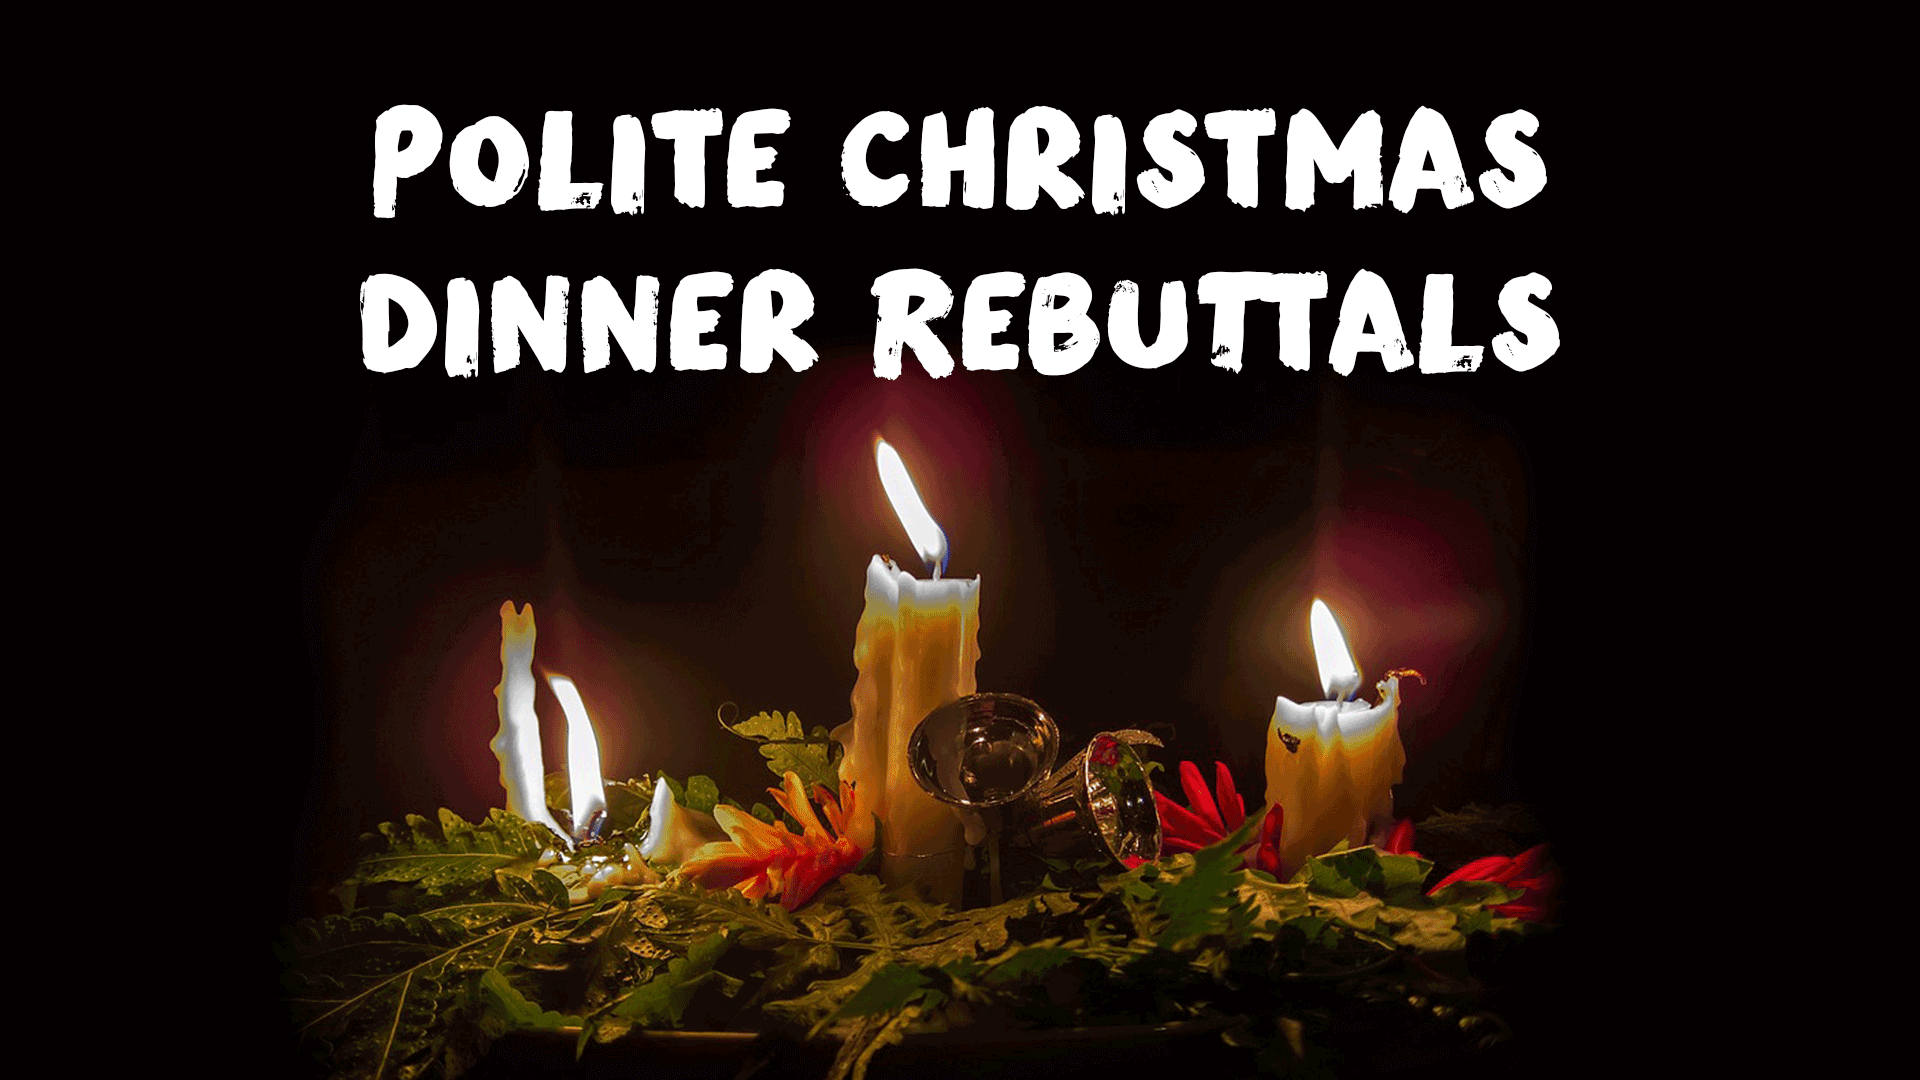 Polite Christmas Dinner Rebuttals: A Family Compendium